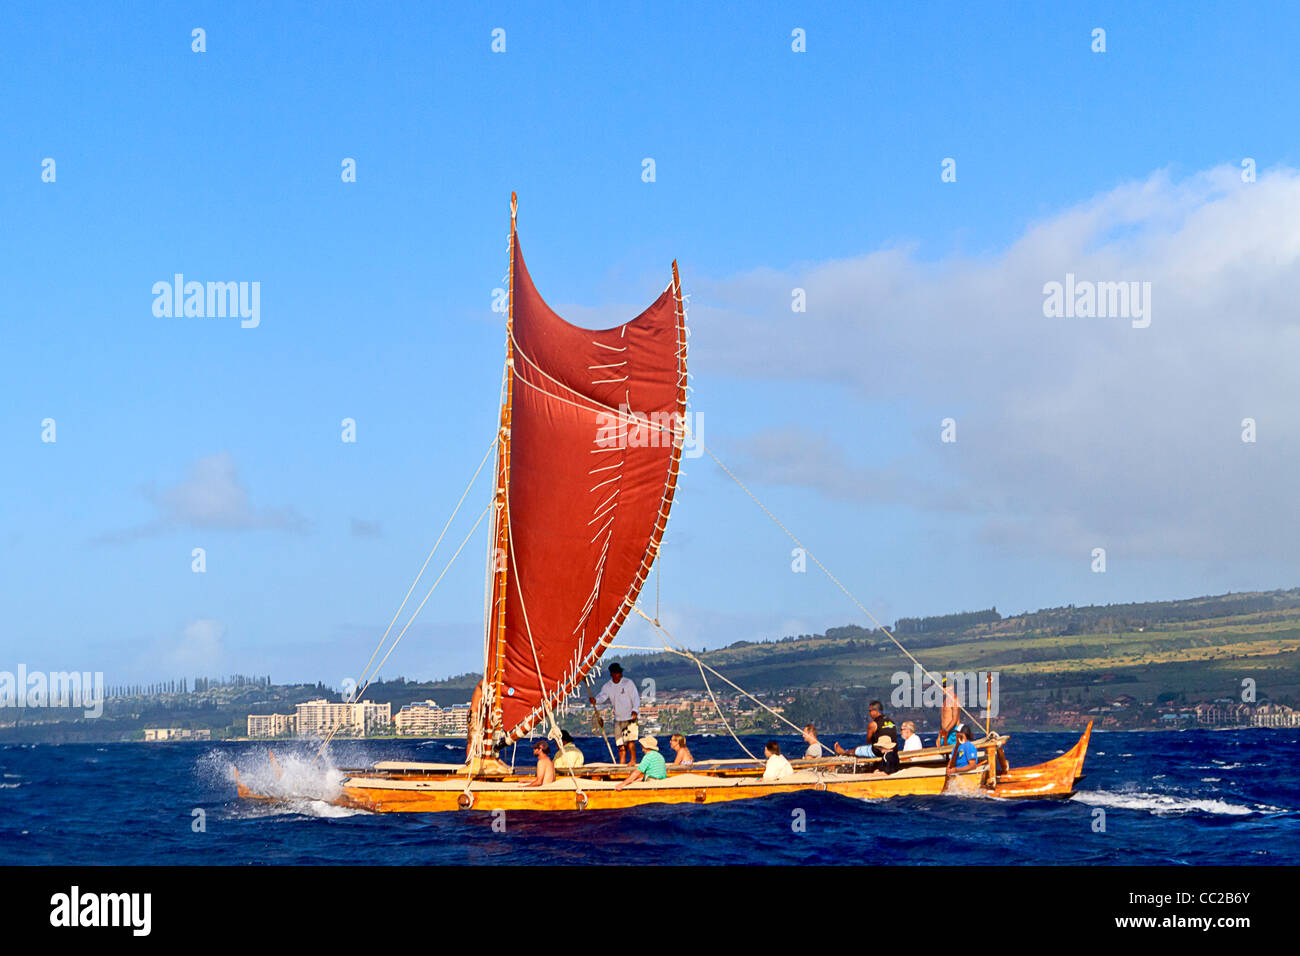 Mo'olele, replica of an ancient Hawaiian war canoe, sails in waters off Maui, Hawaii, - Stock Image